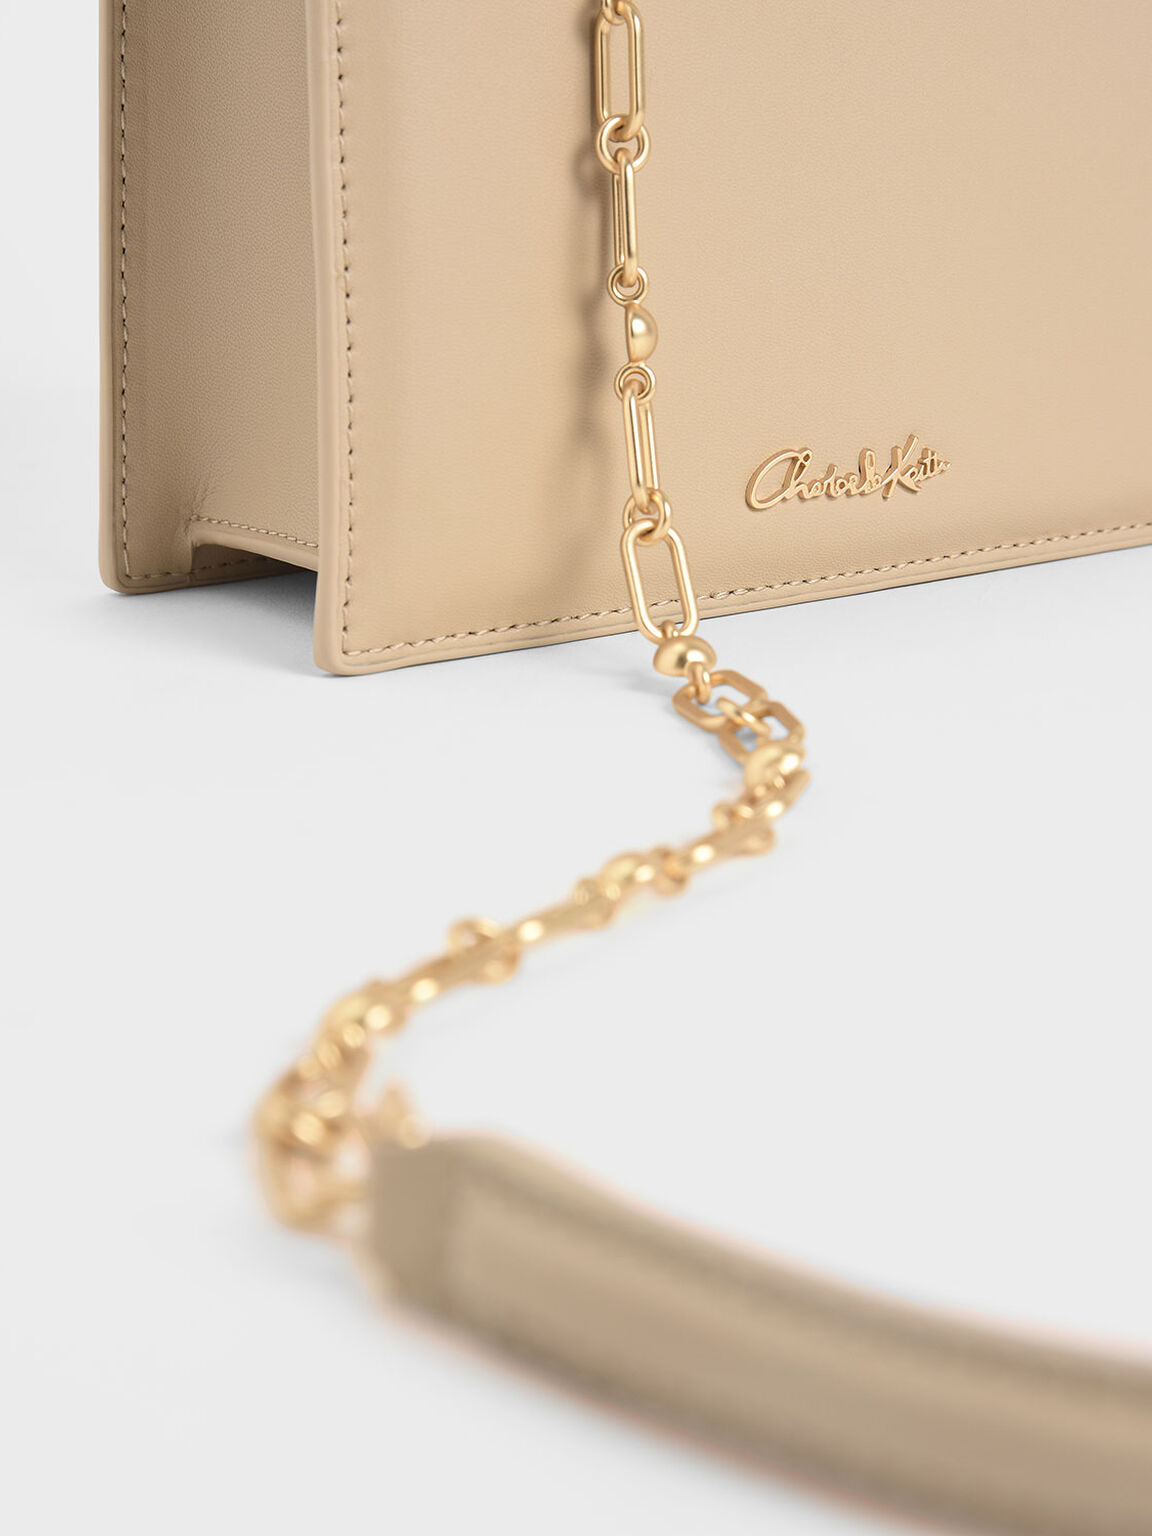 Leather Chain Strap Crossbody Bag, Beige, hi-res